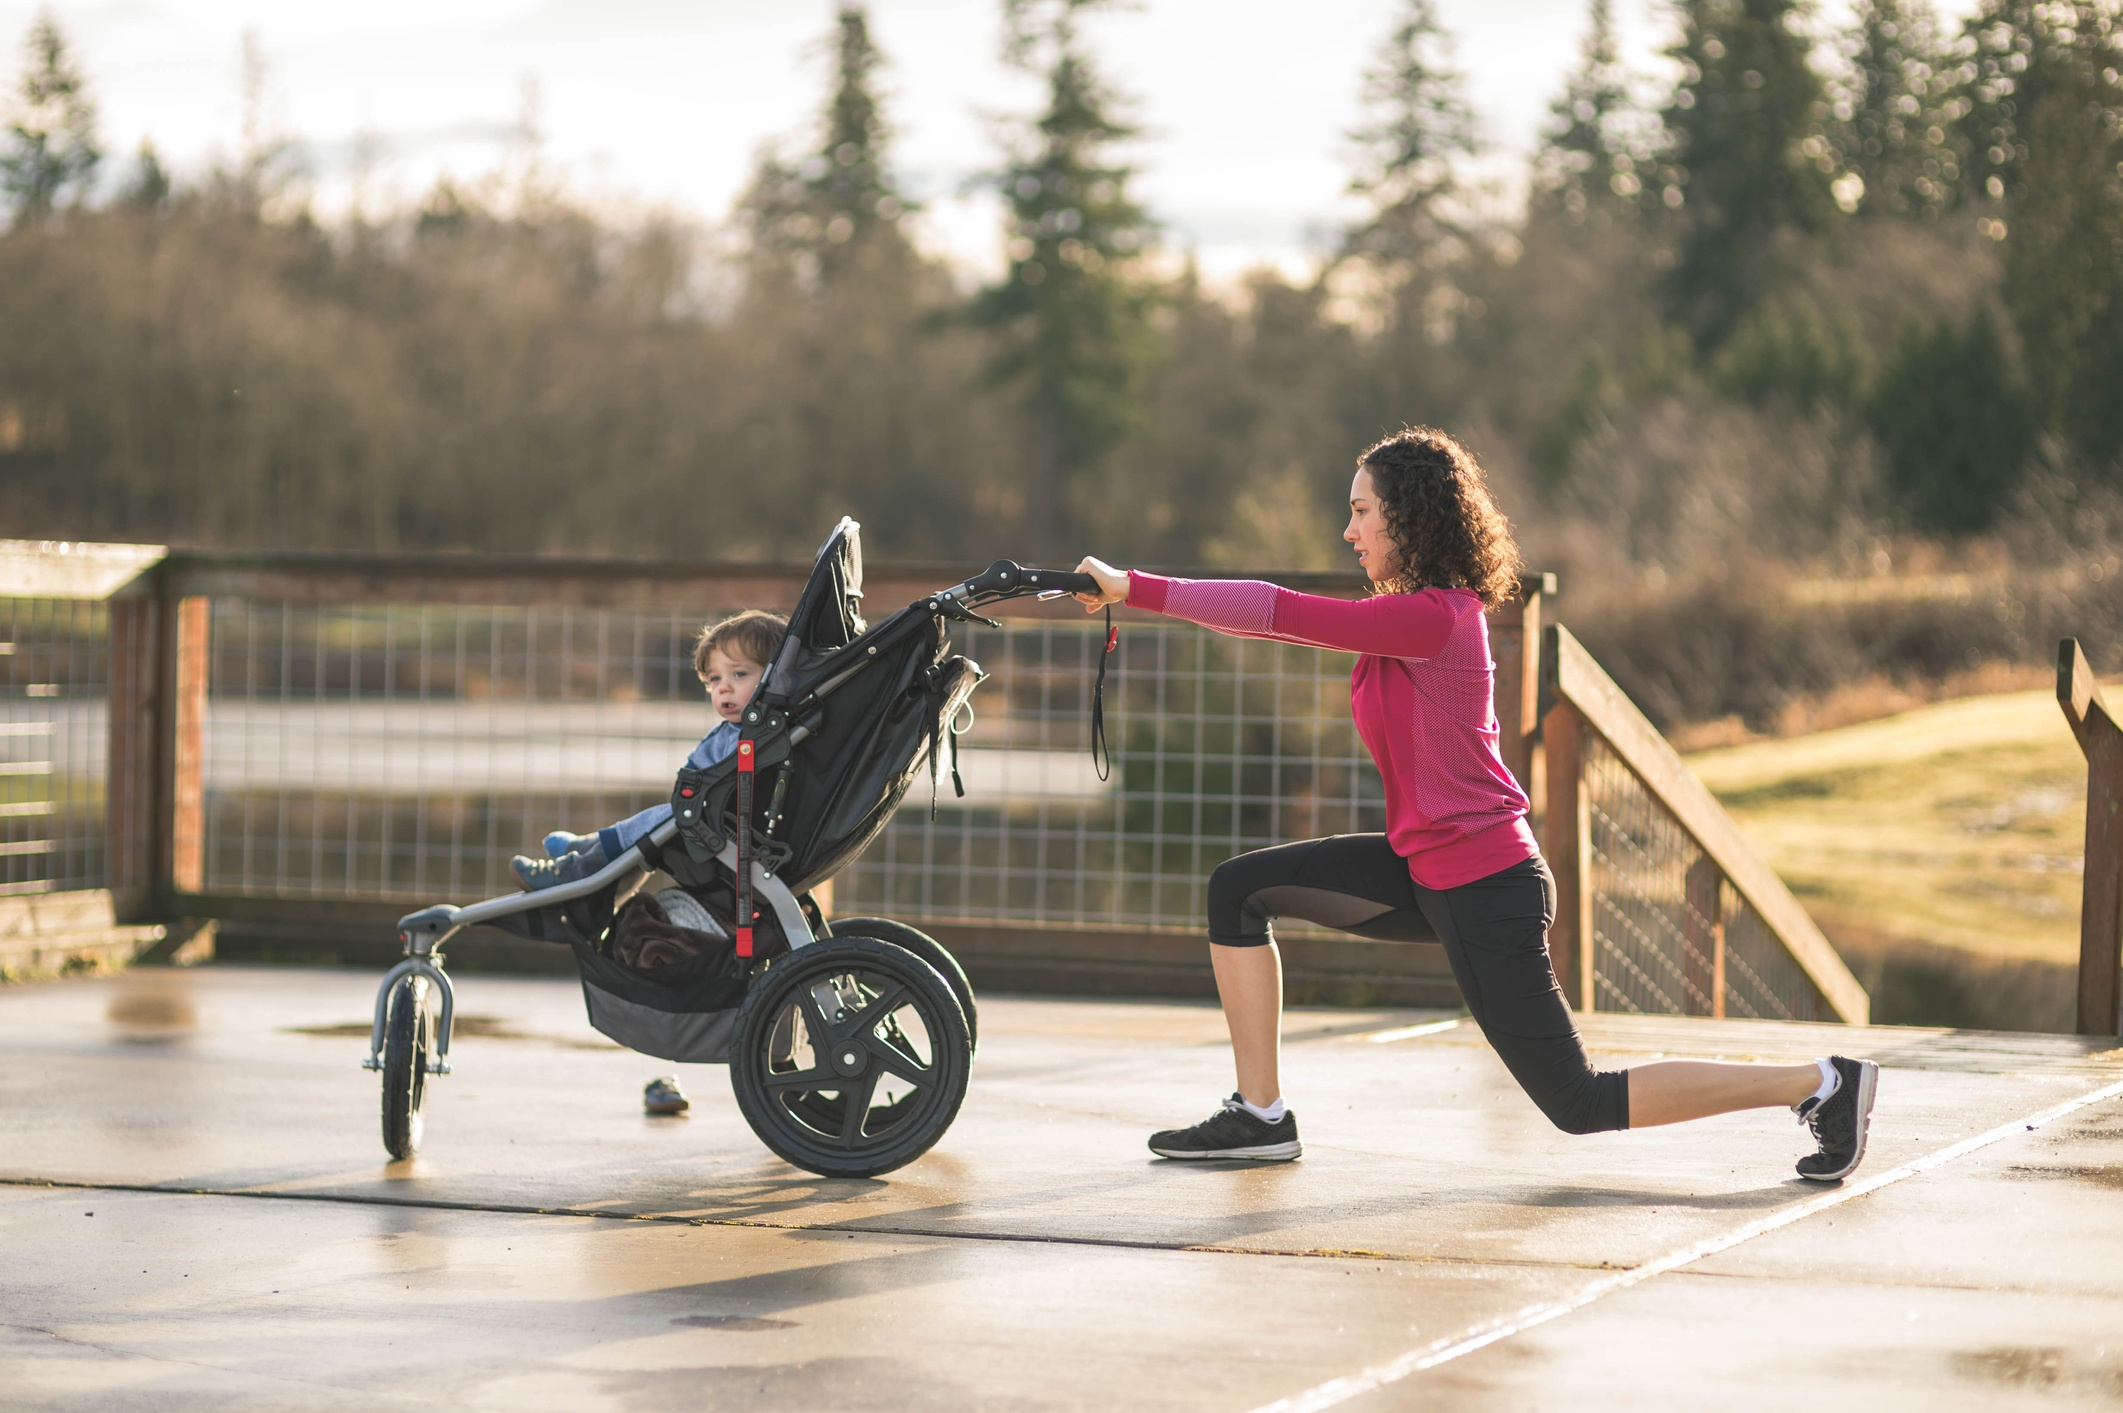 Young-mom-stretching-next-to-child-in-baby-stroller-647549370_2126x1415